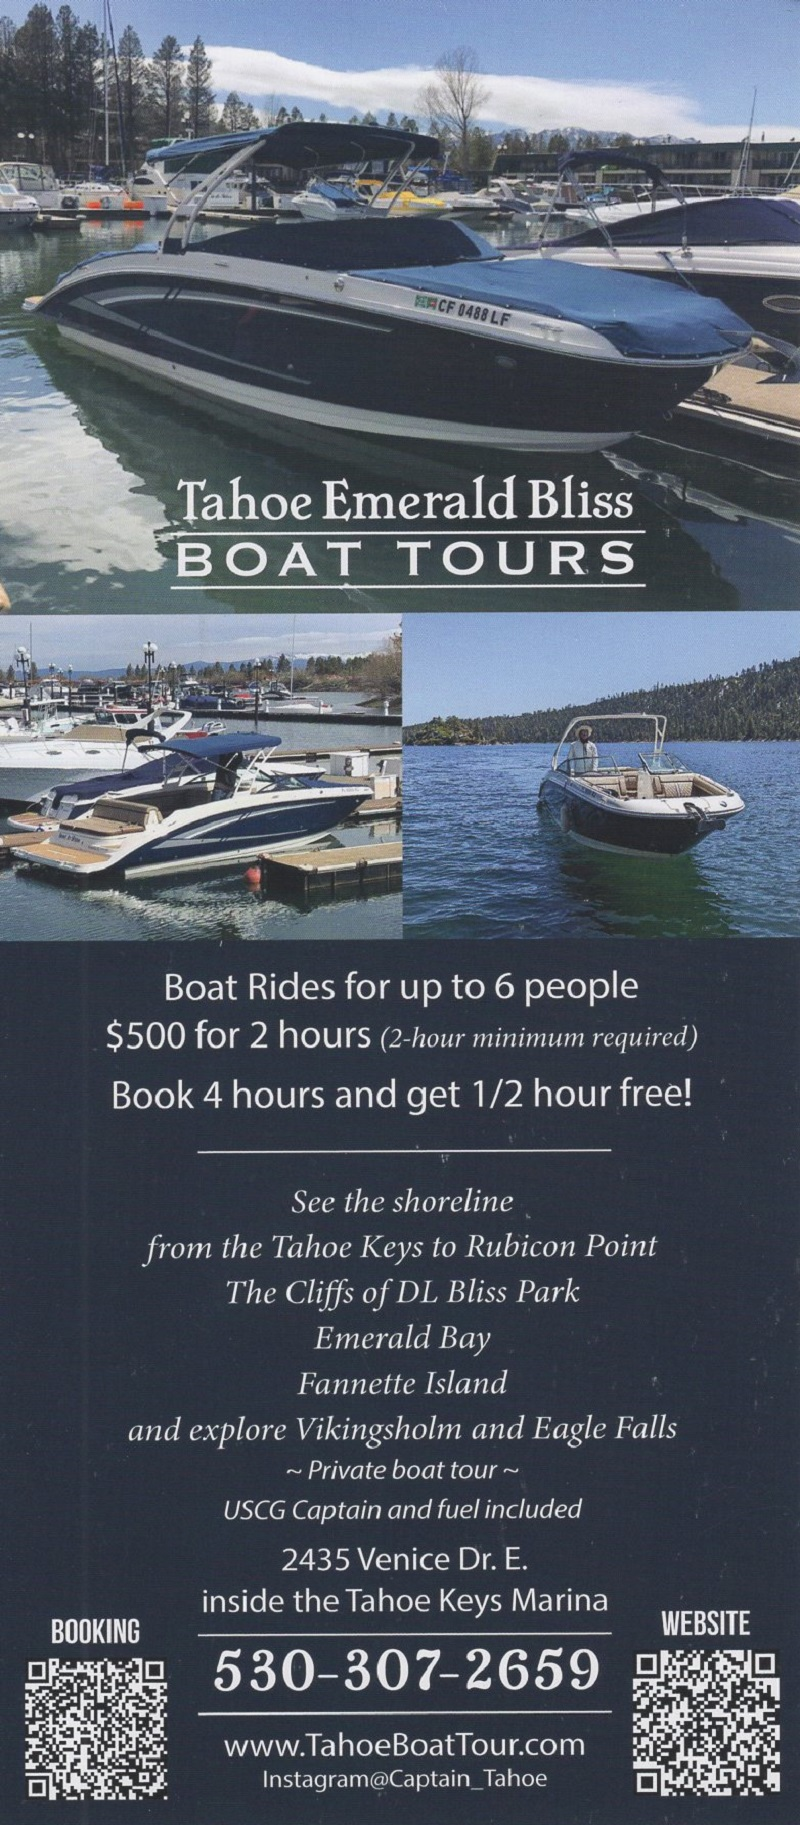 Tahoe Emerald Bliss Boat Tours